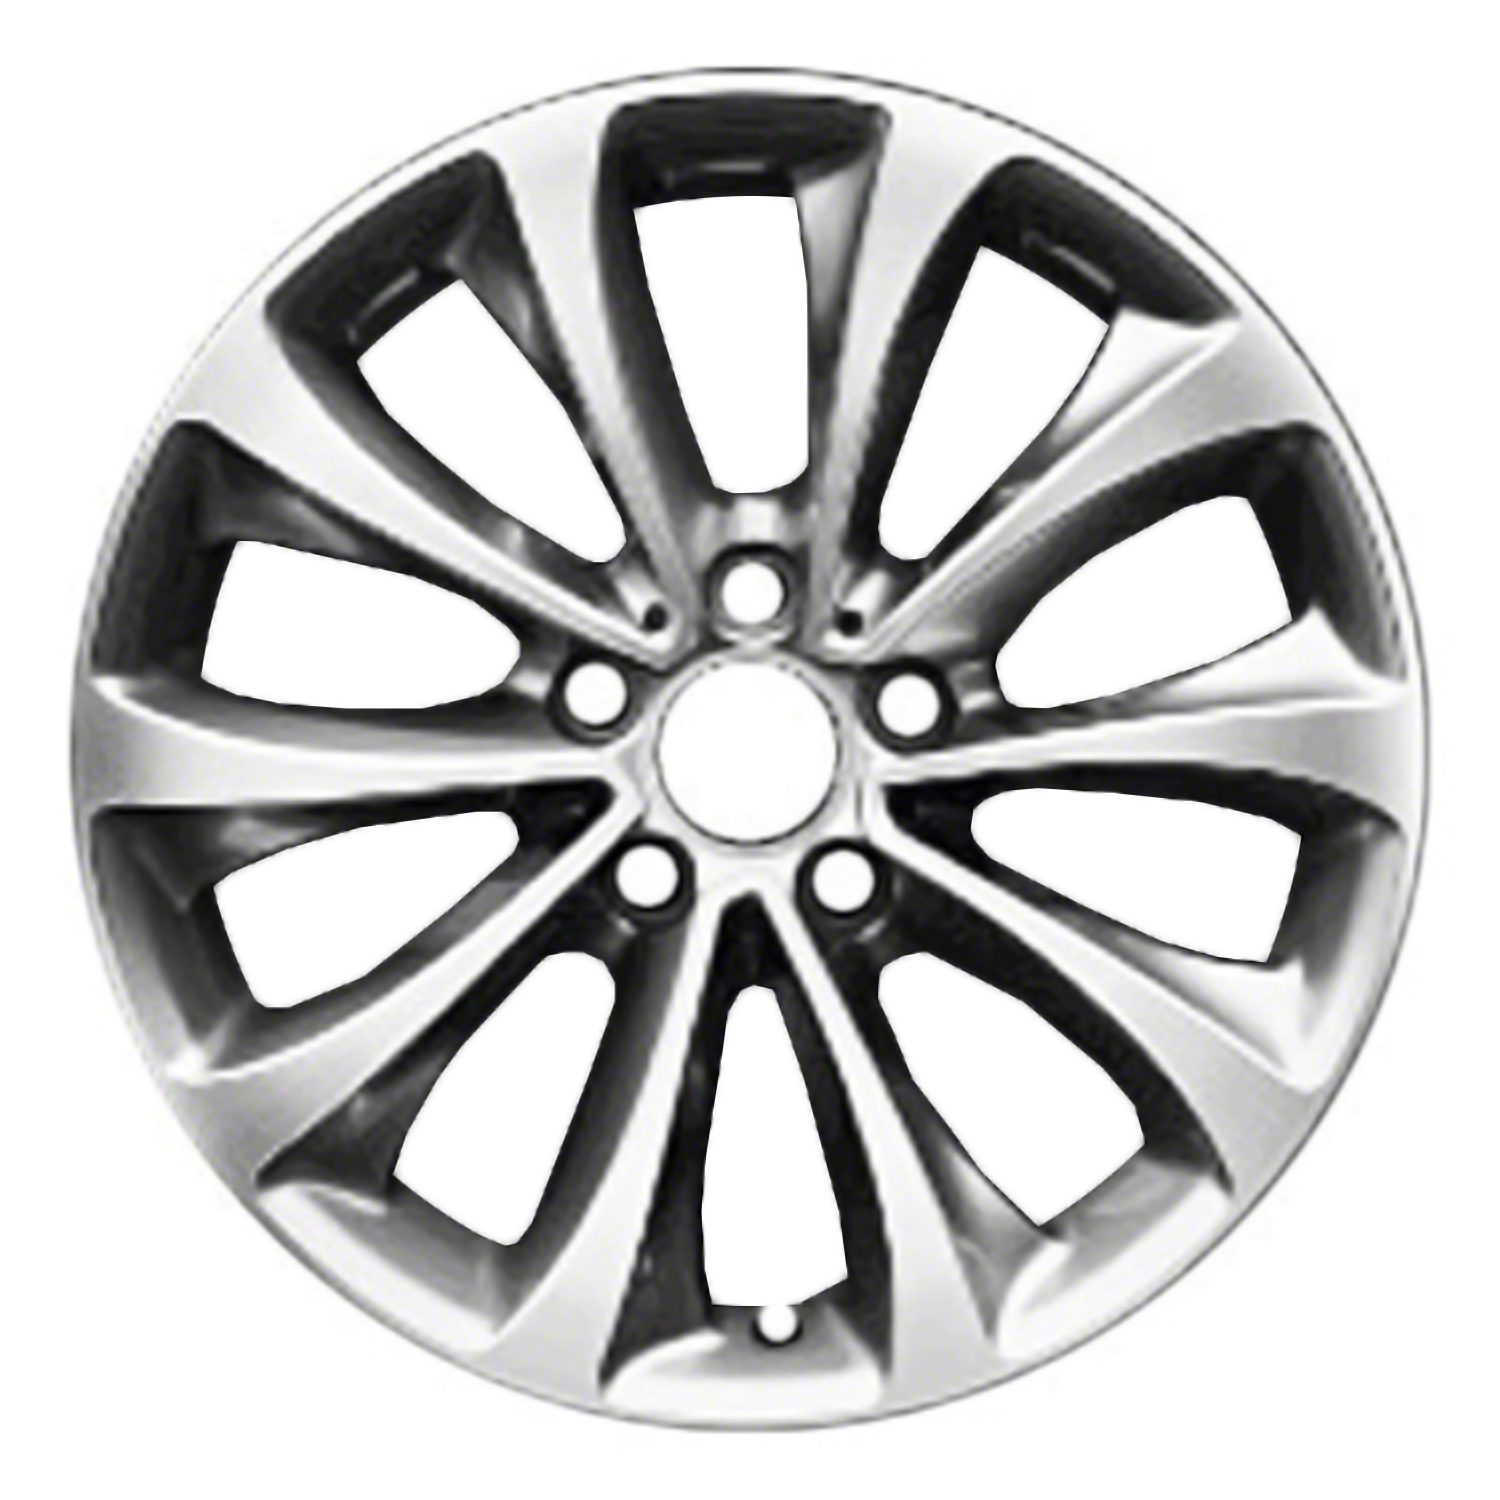 Compatible Reconditioned 18 X 8 10 Spokes Bright Aluminium Alloy